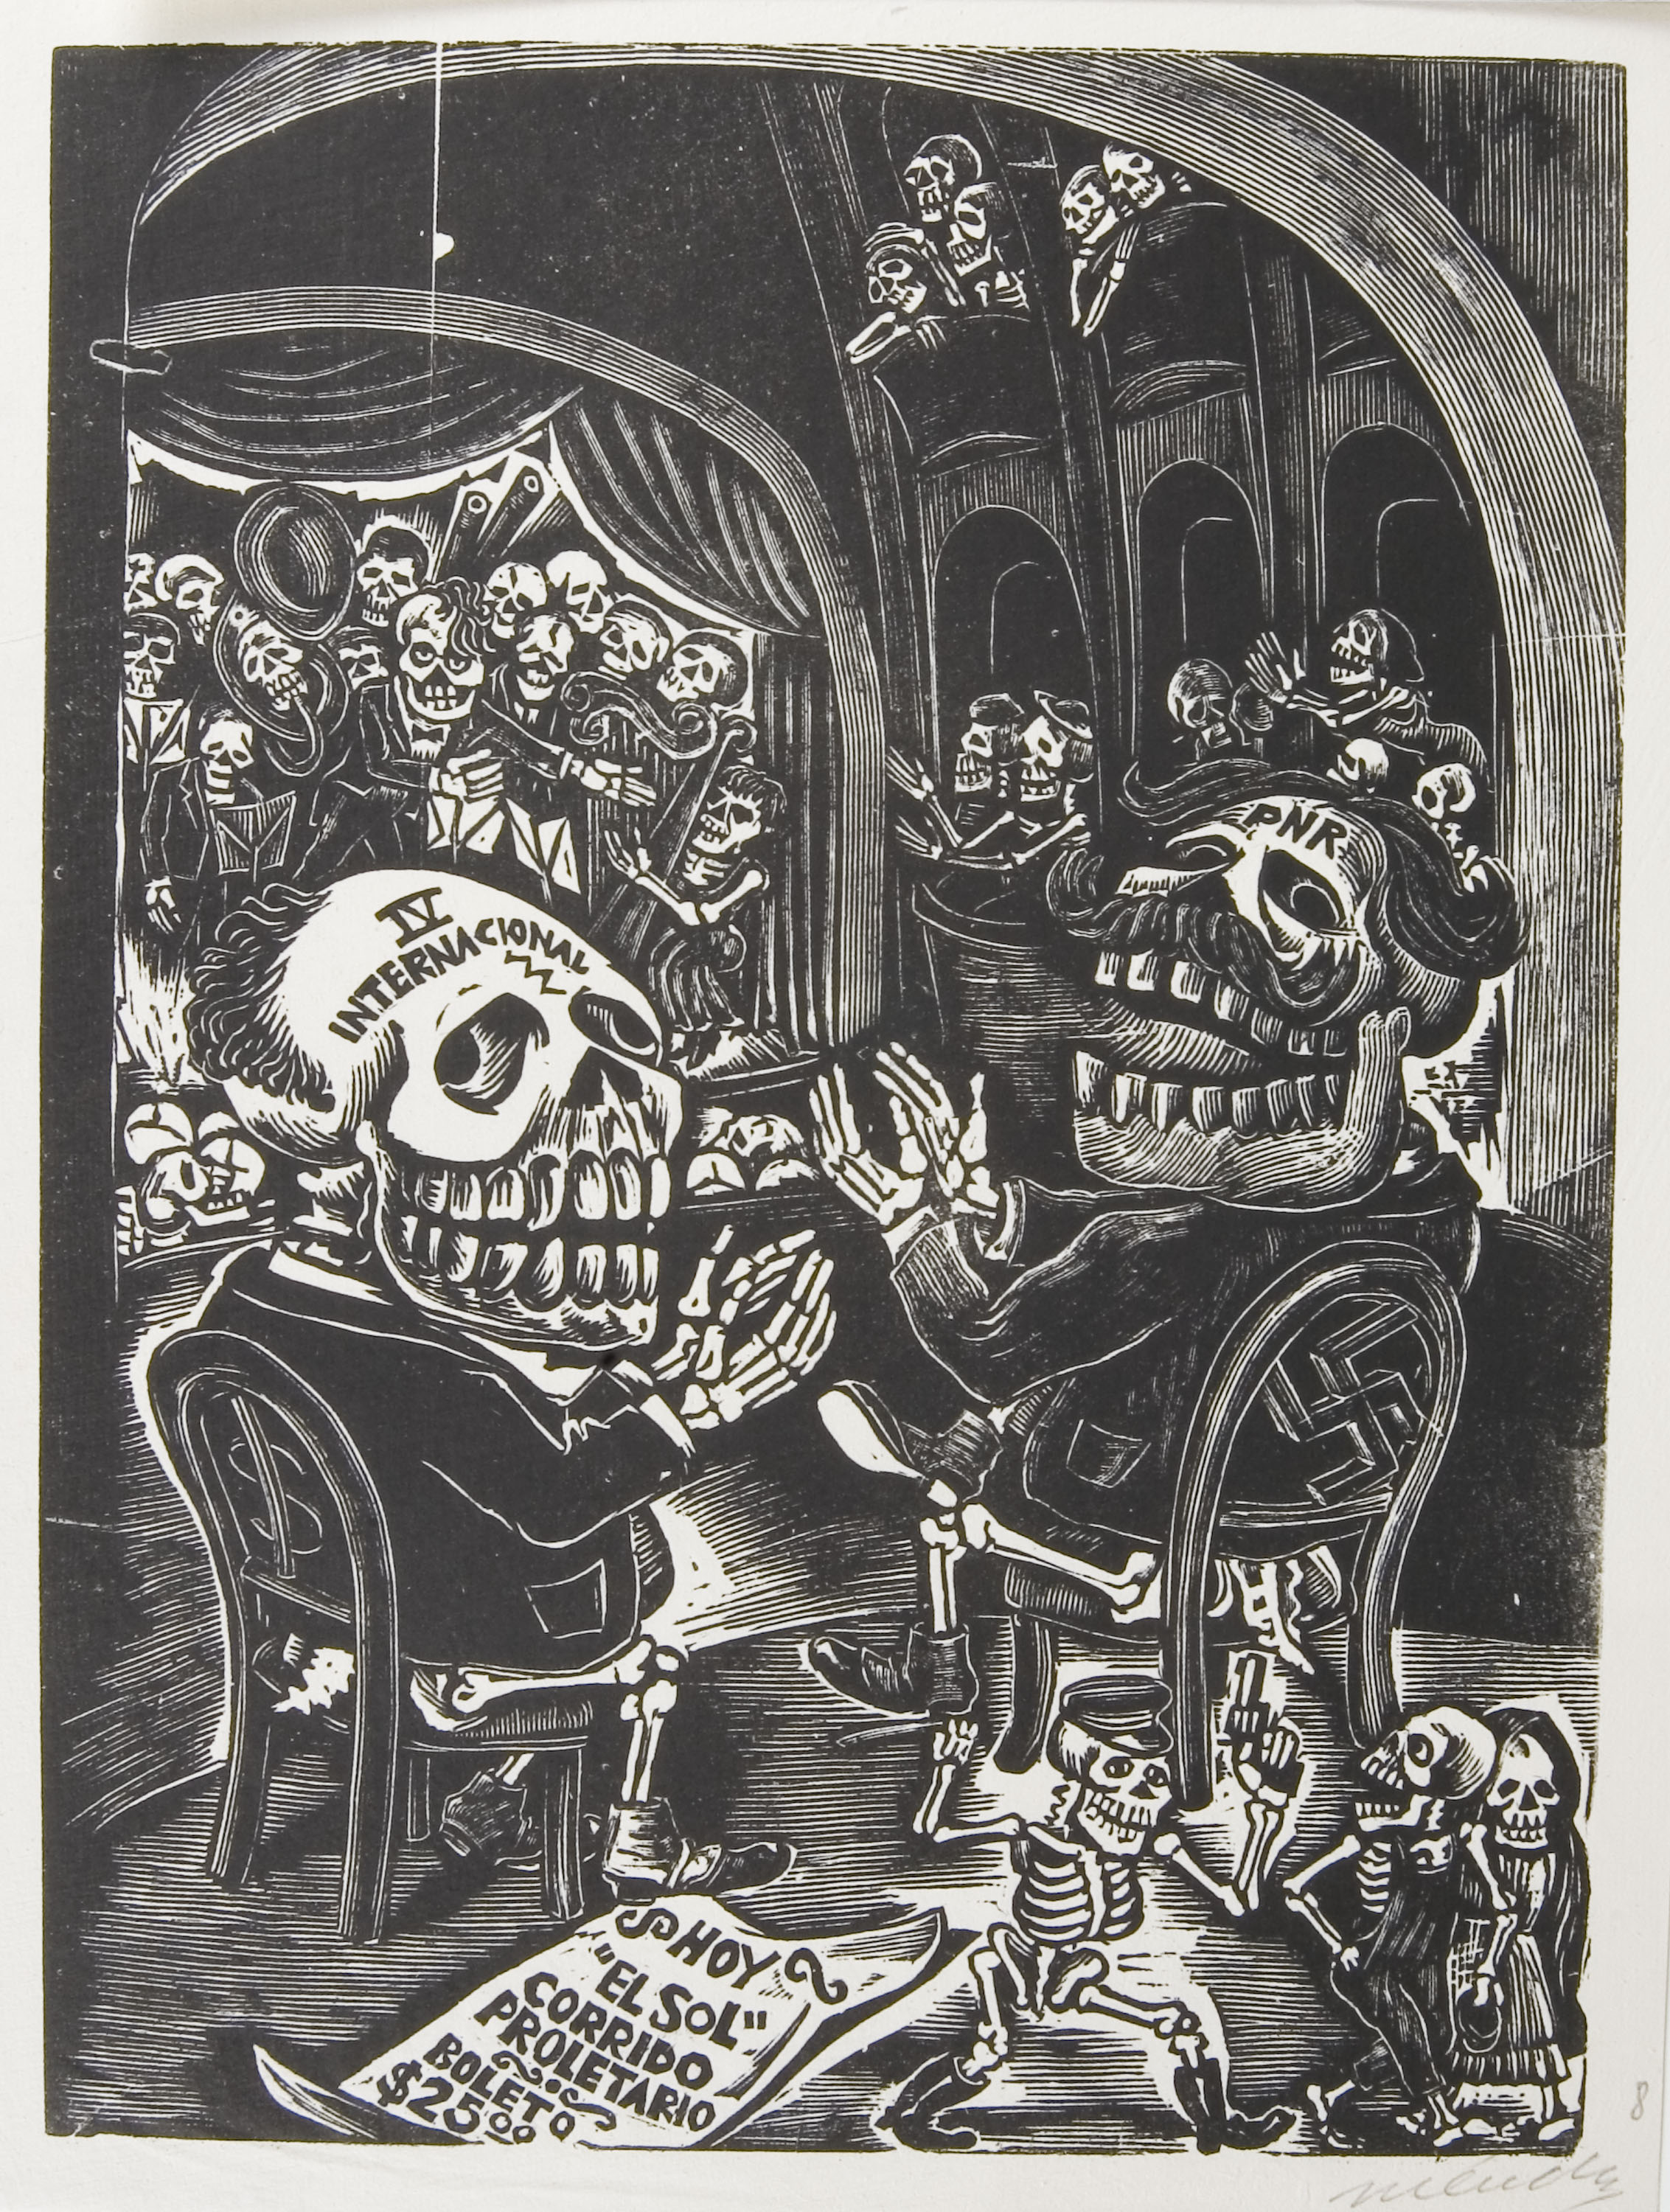 Leopoldo Méndez (Mexican 1902–1969), <em>Concierto Sinfónico de Calaveras</em>, 1943 (The Symphonic Concert of Skeletons), woodcut engraving on paper. Gift of Charles S. Hayes '65, 2009.014.008